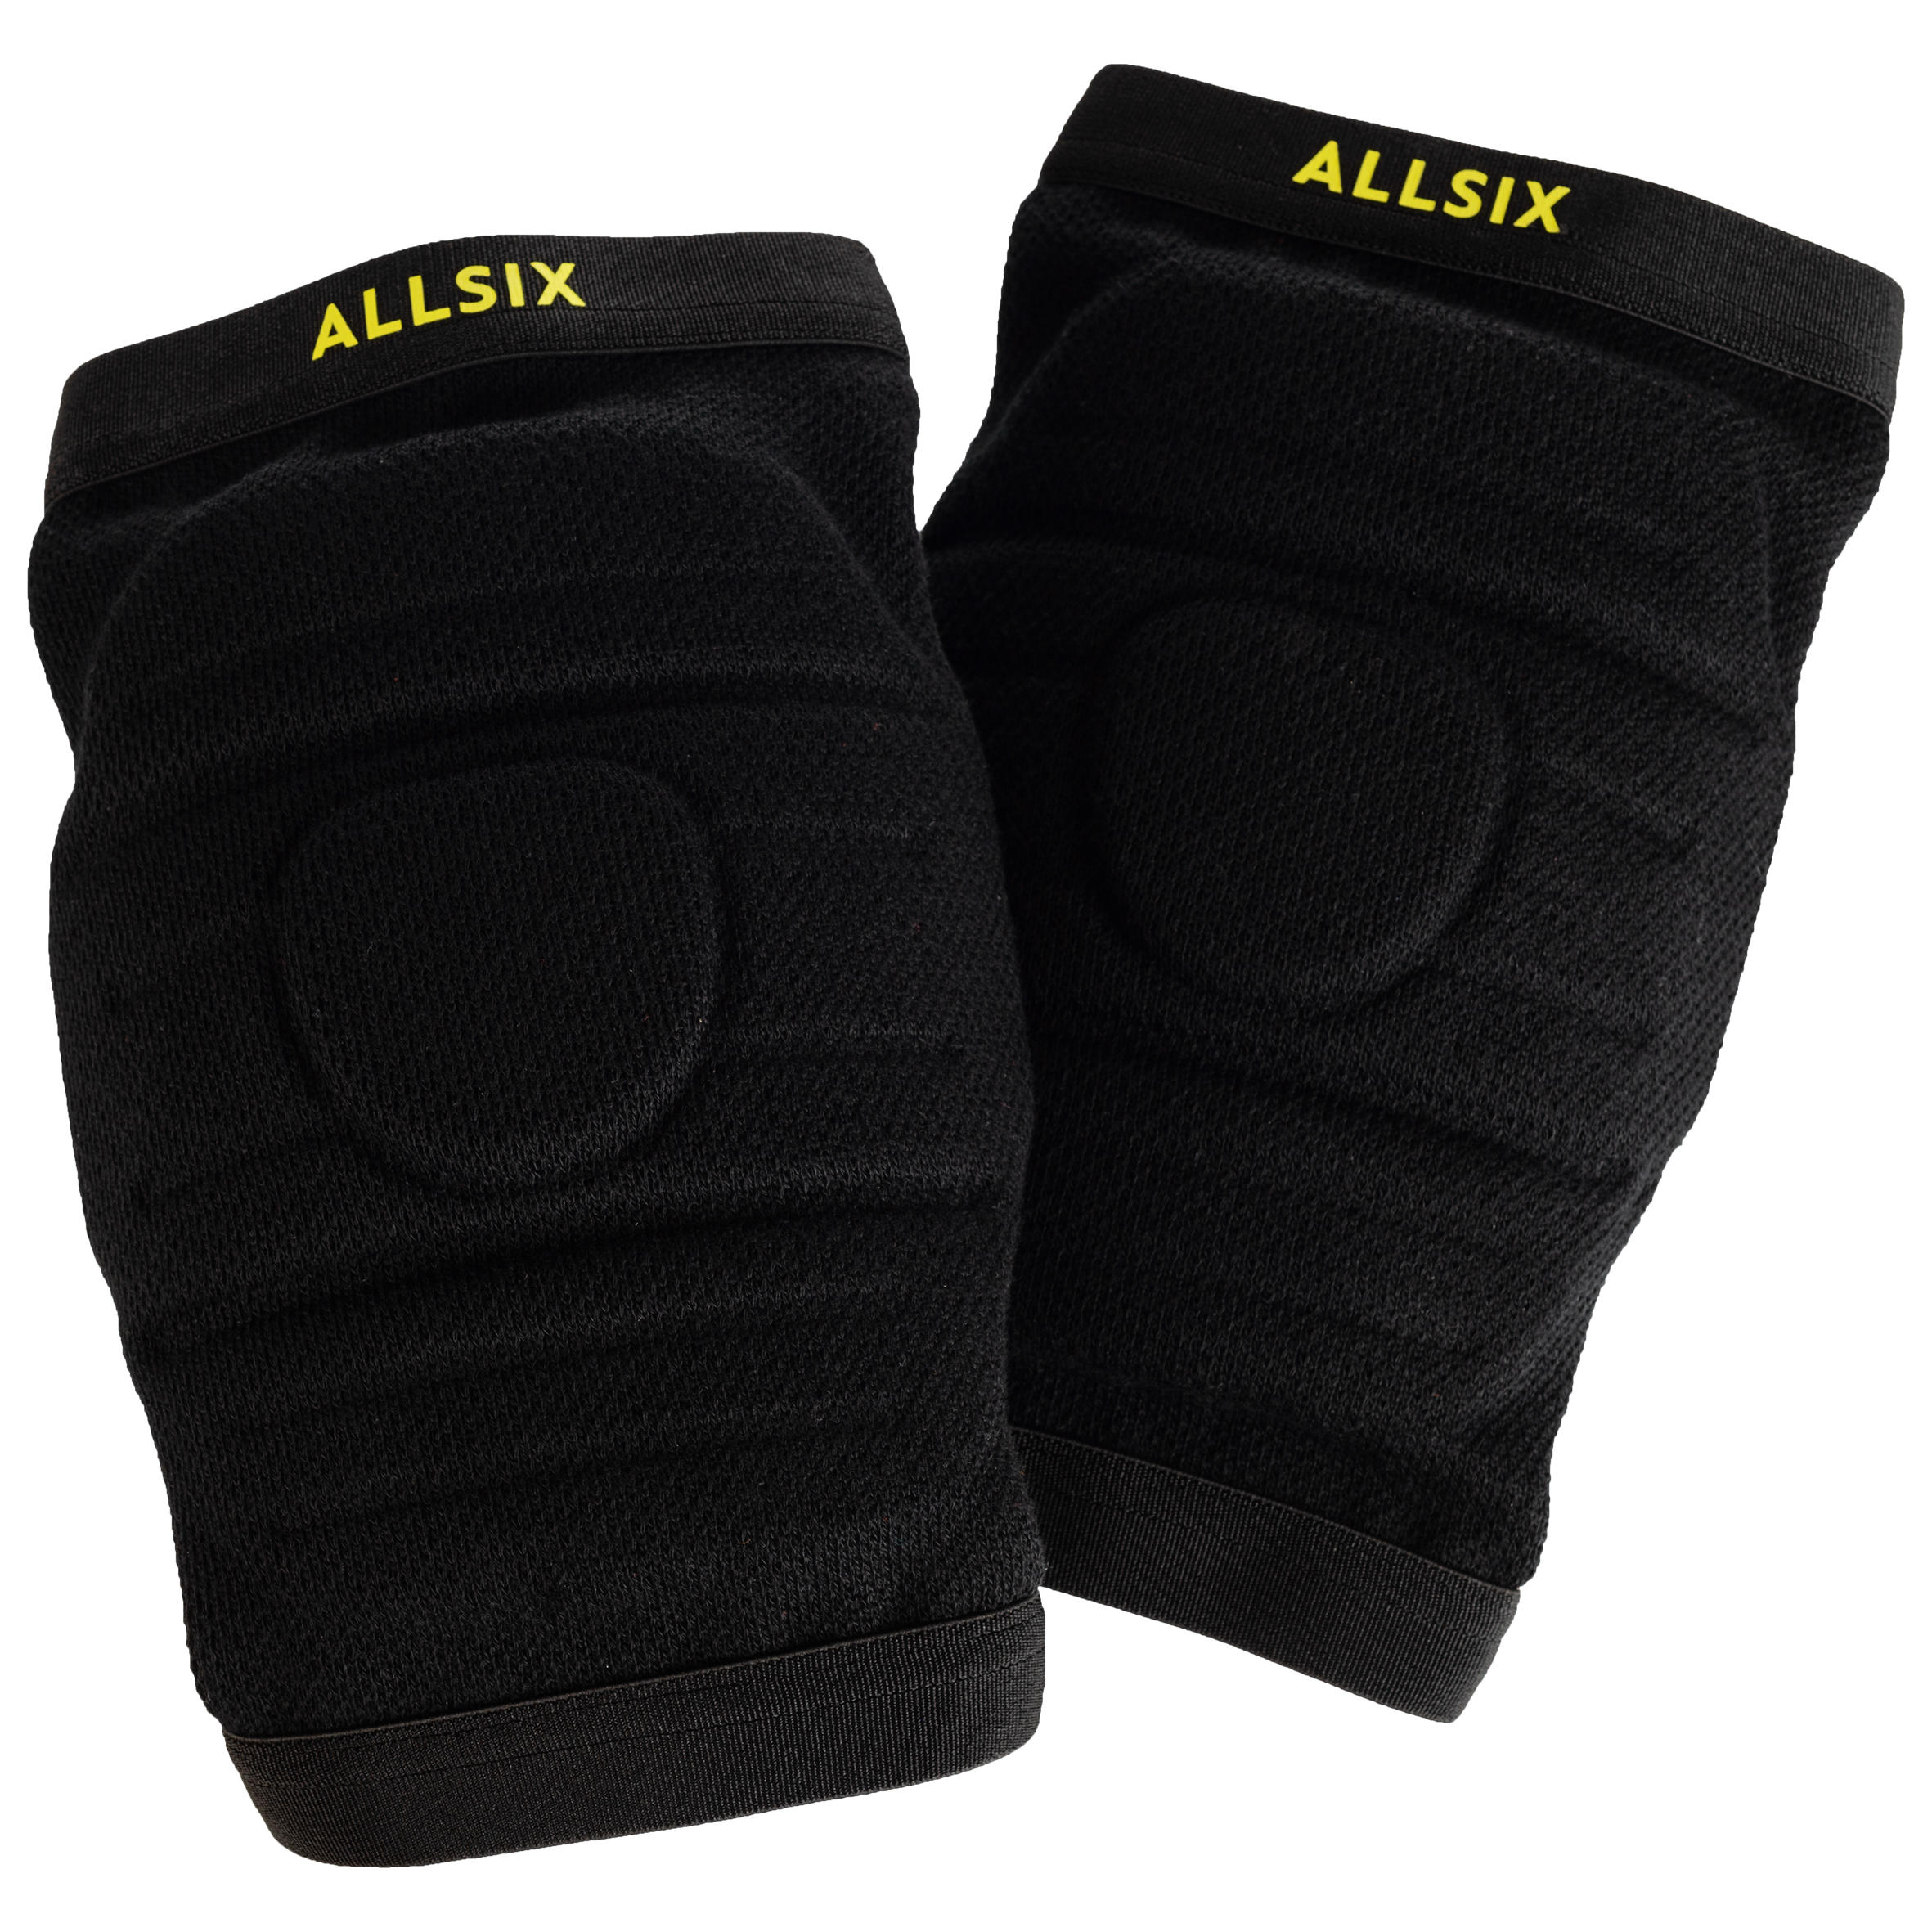 V900 Volleyball Knee Pads -...